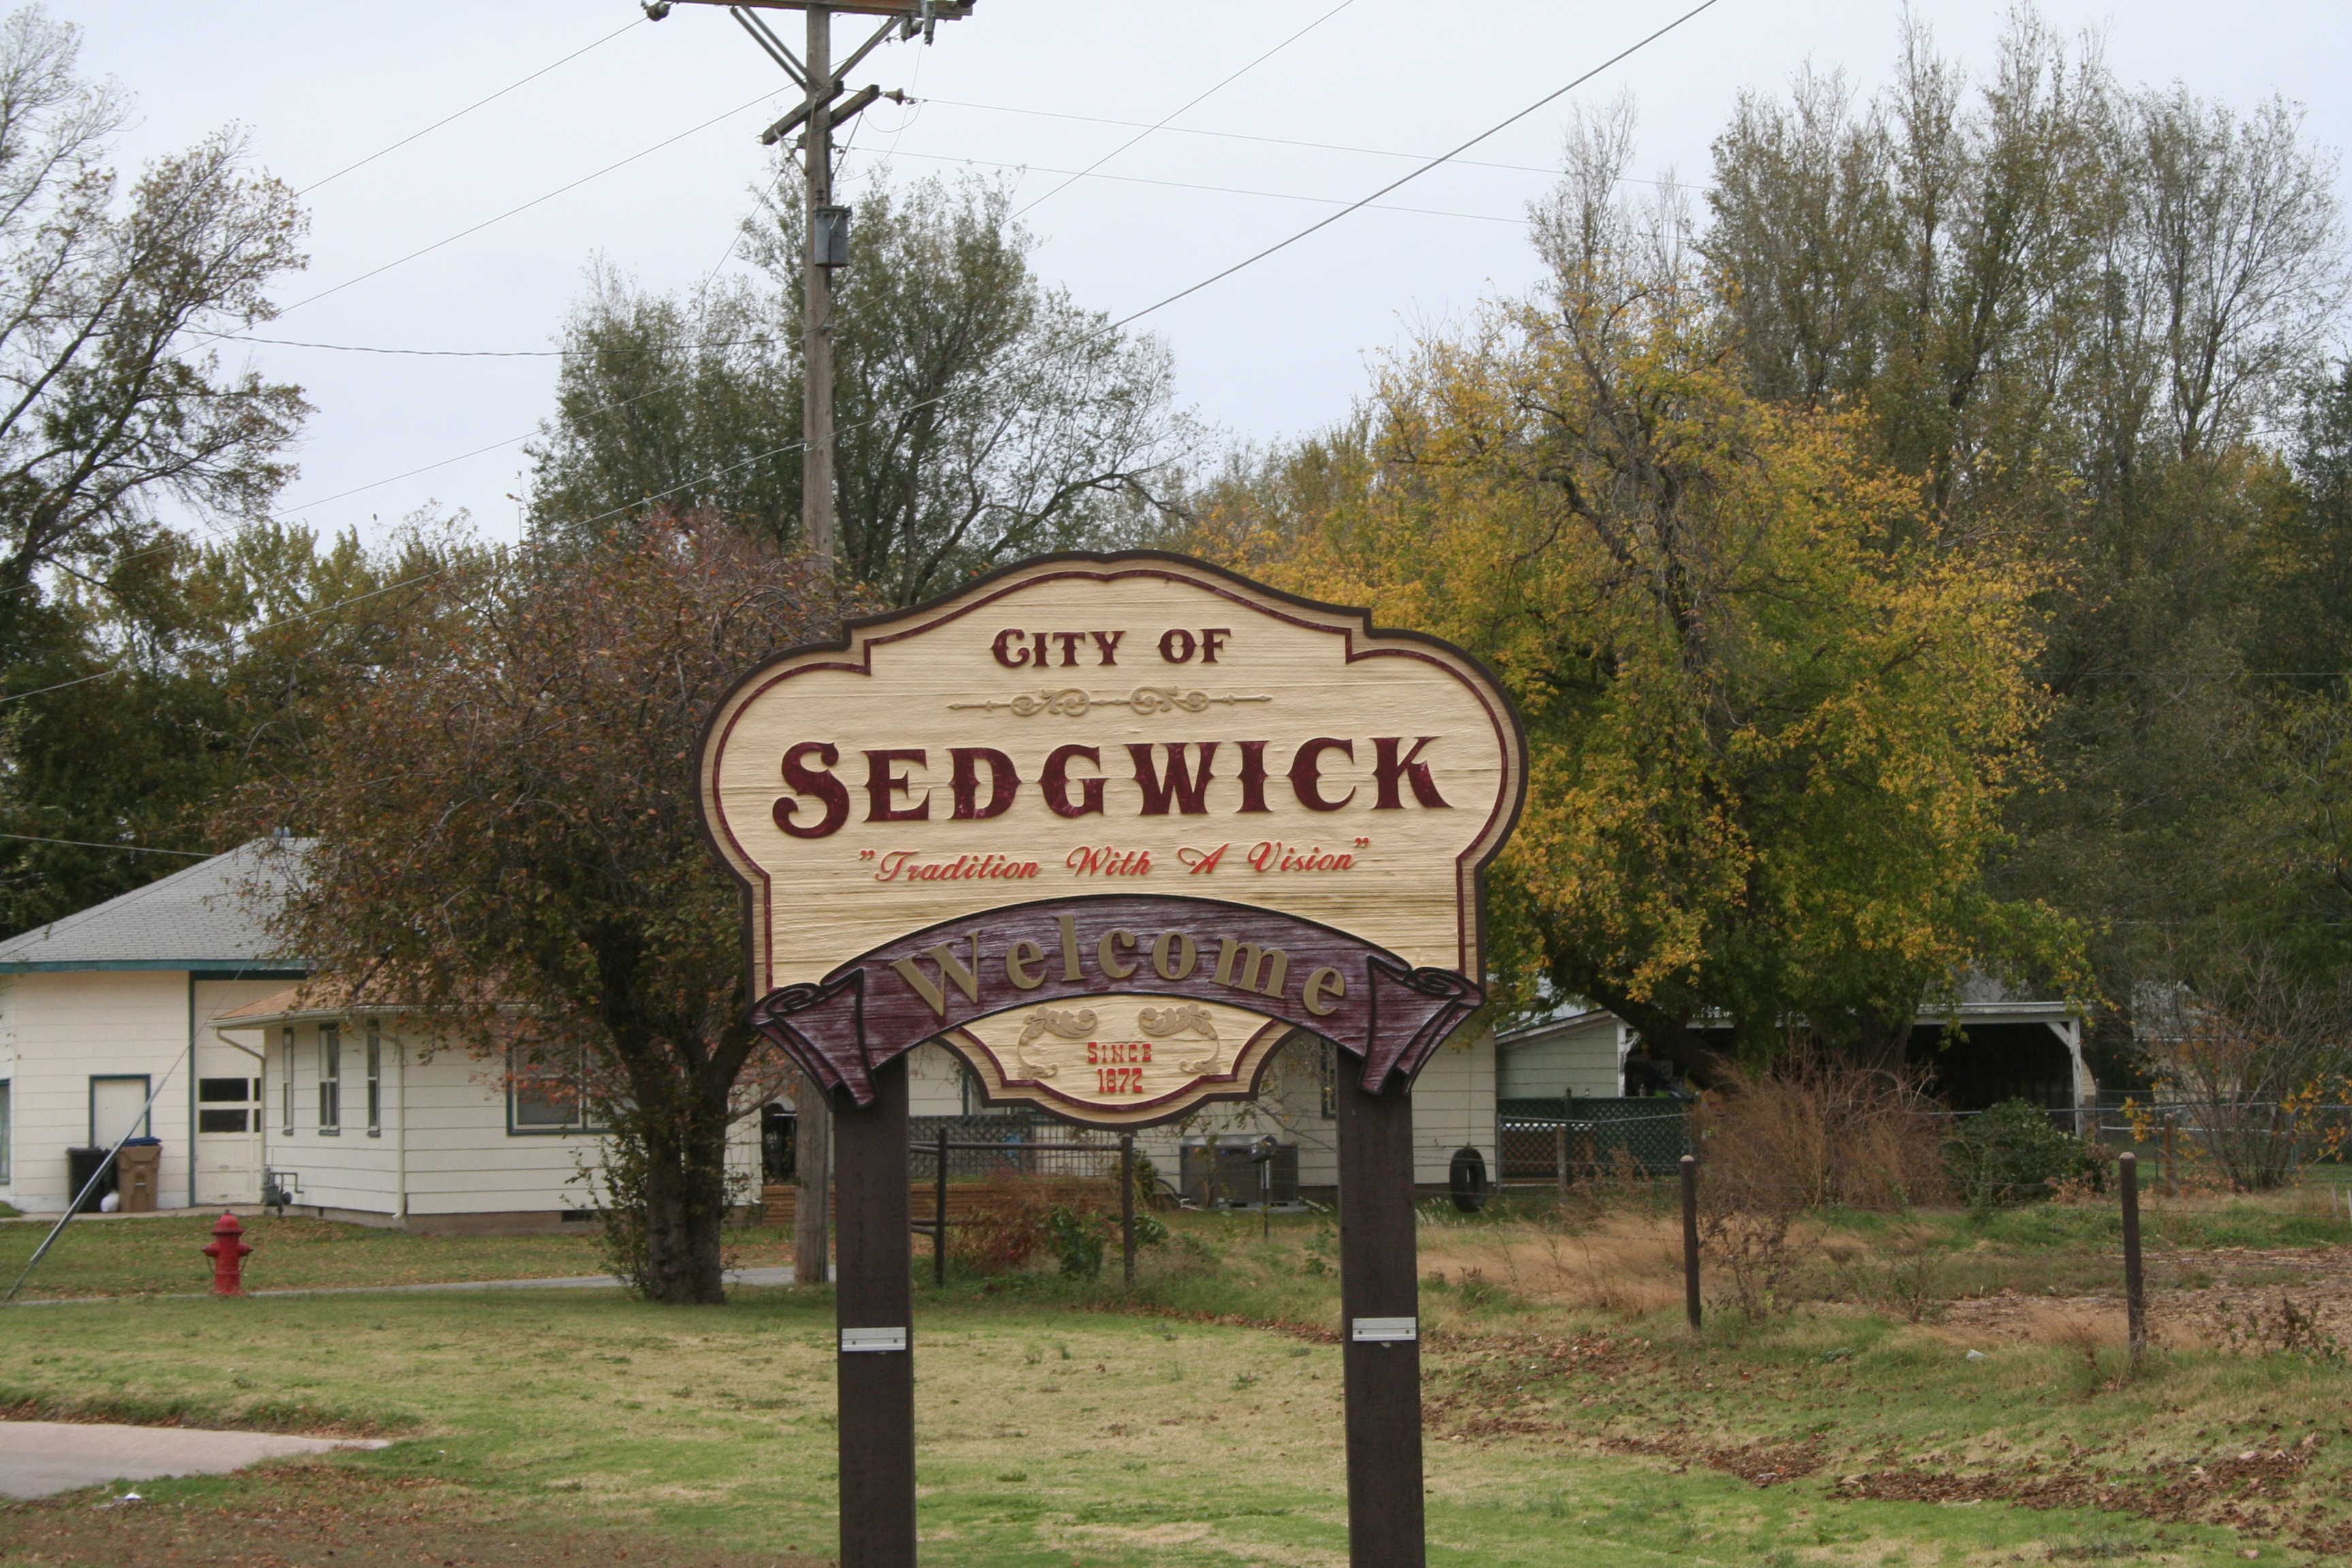 City of sedgwick sign (4)